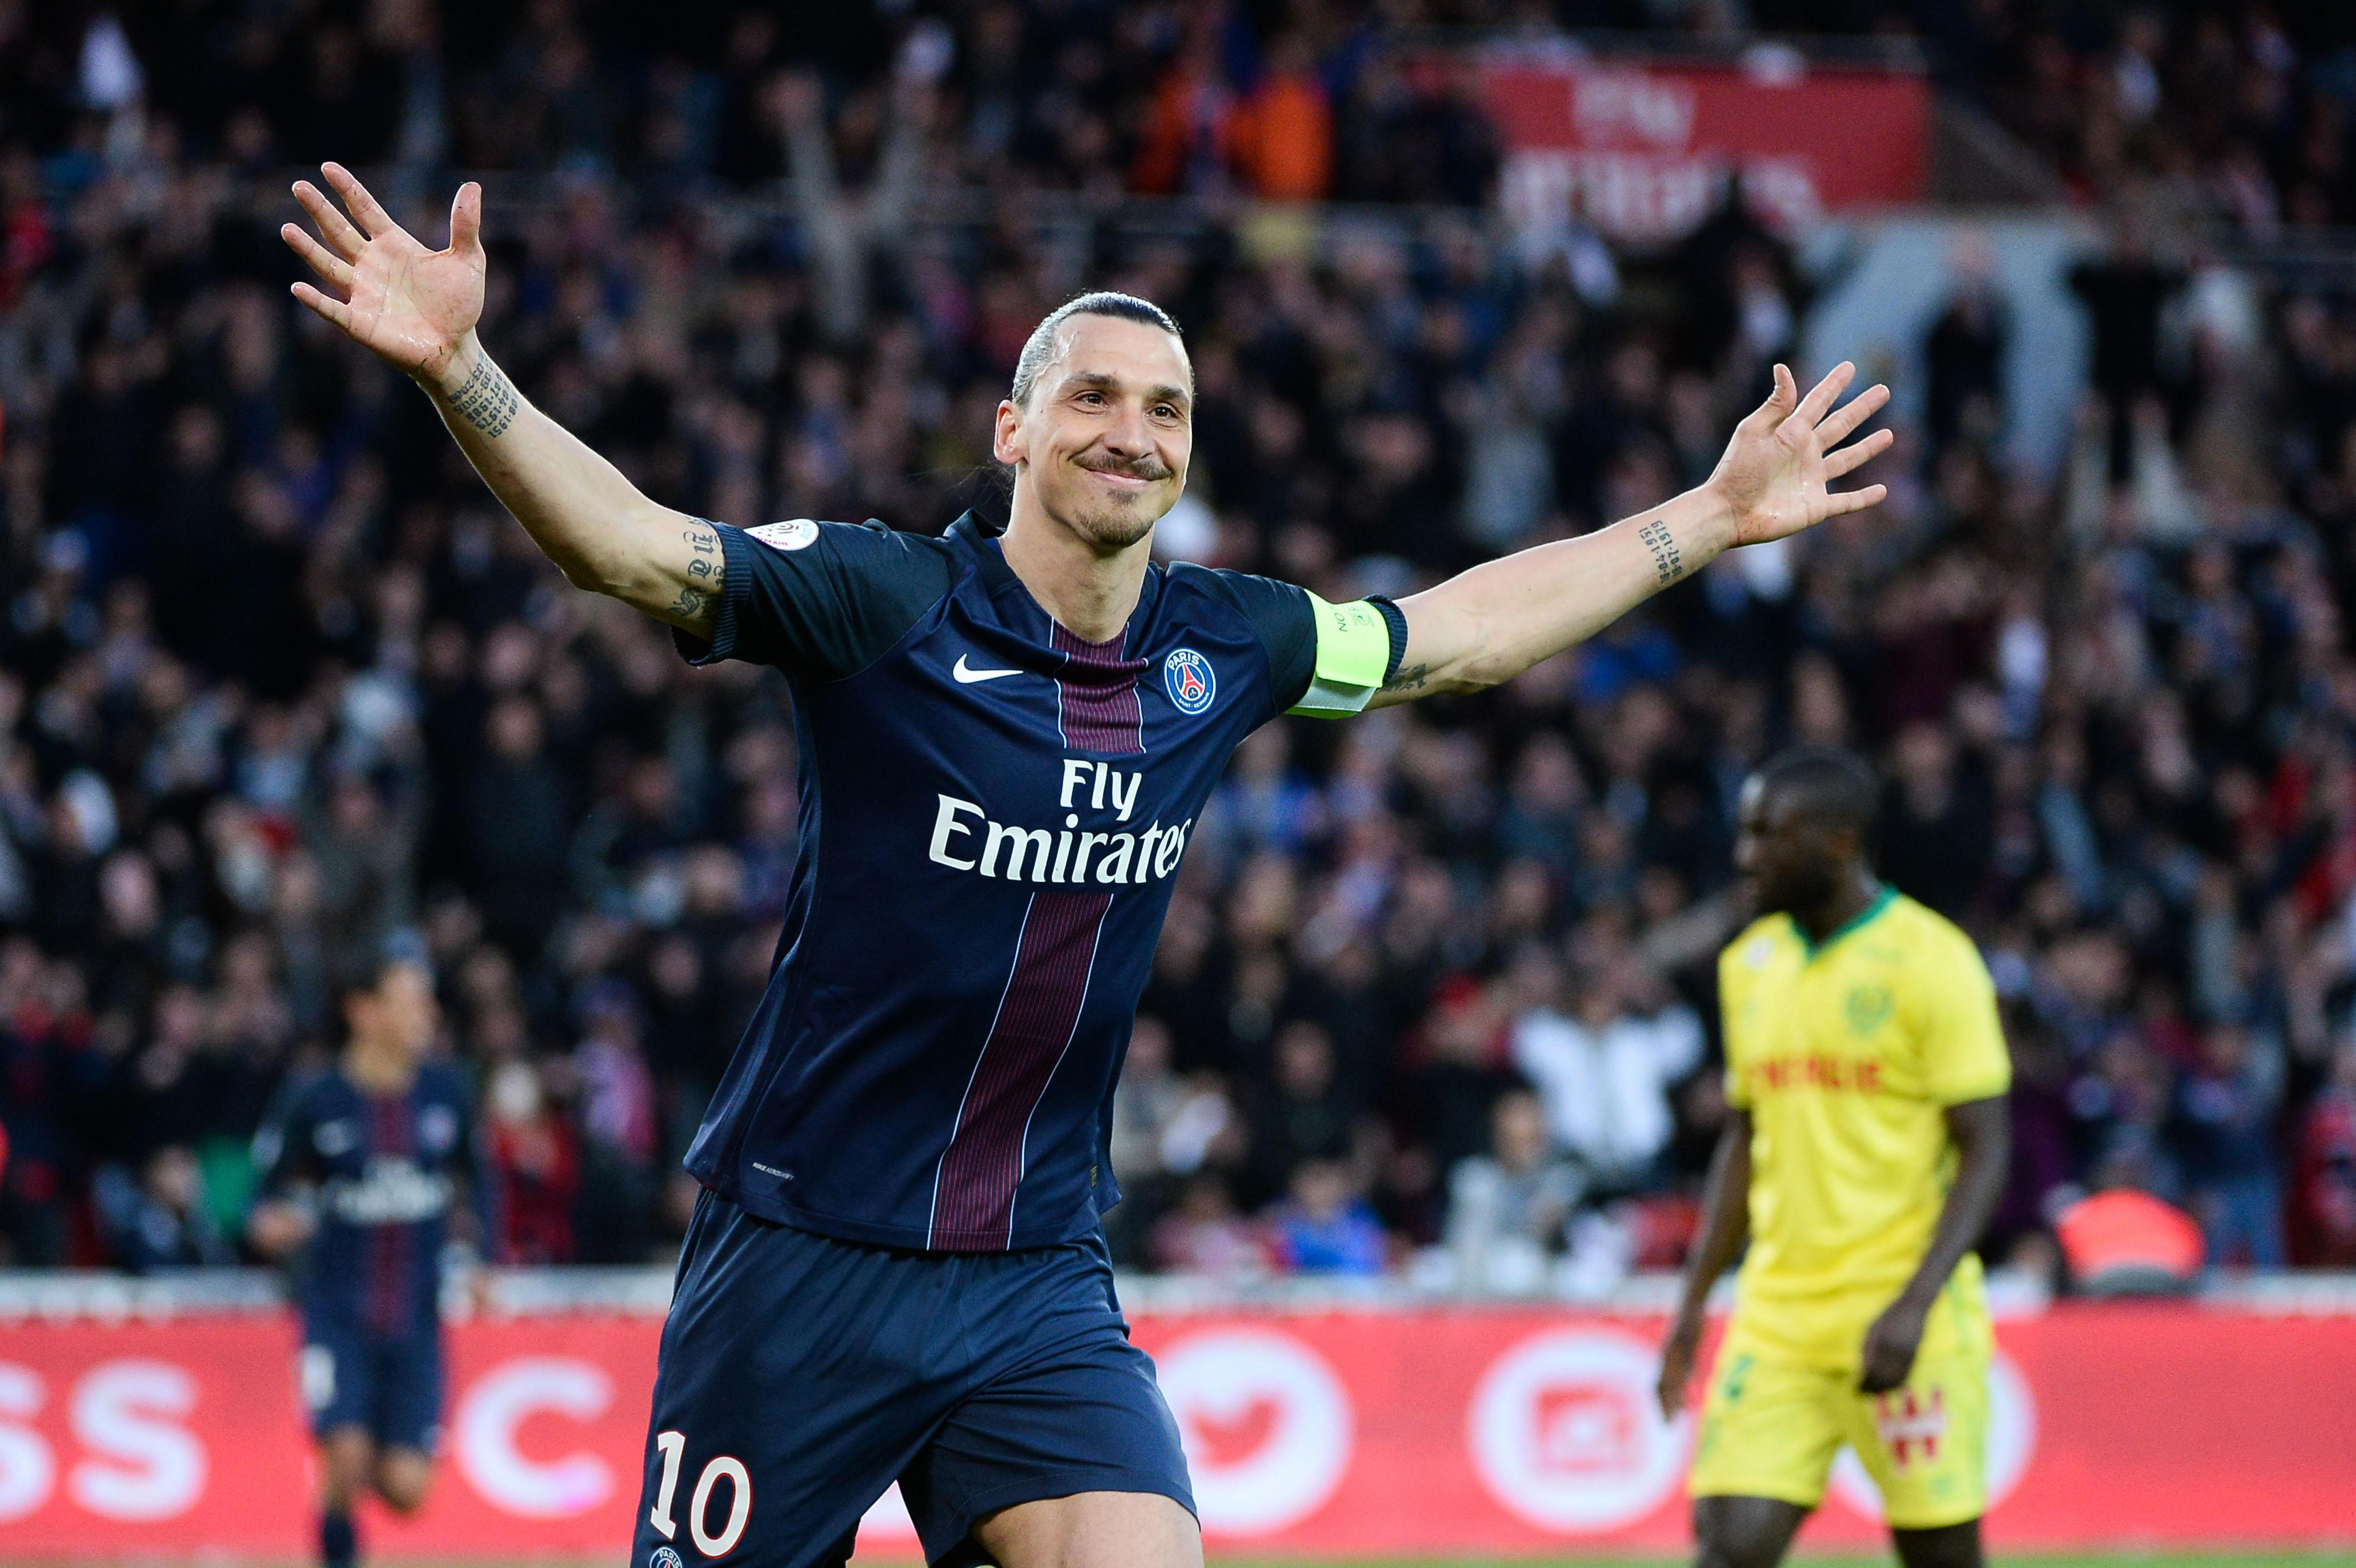 Serge Aurier mocked Zlatan Ibrahimovic during a public Q&A on Periscope